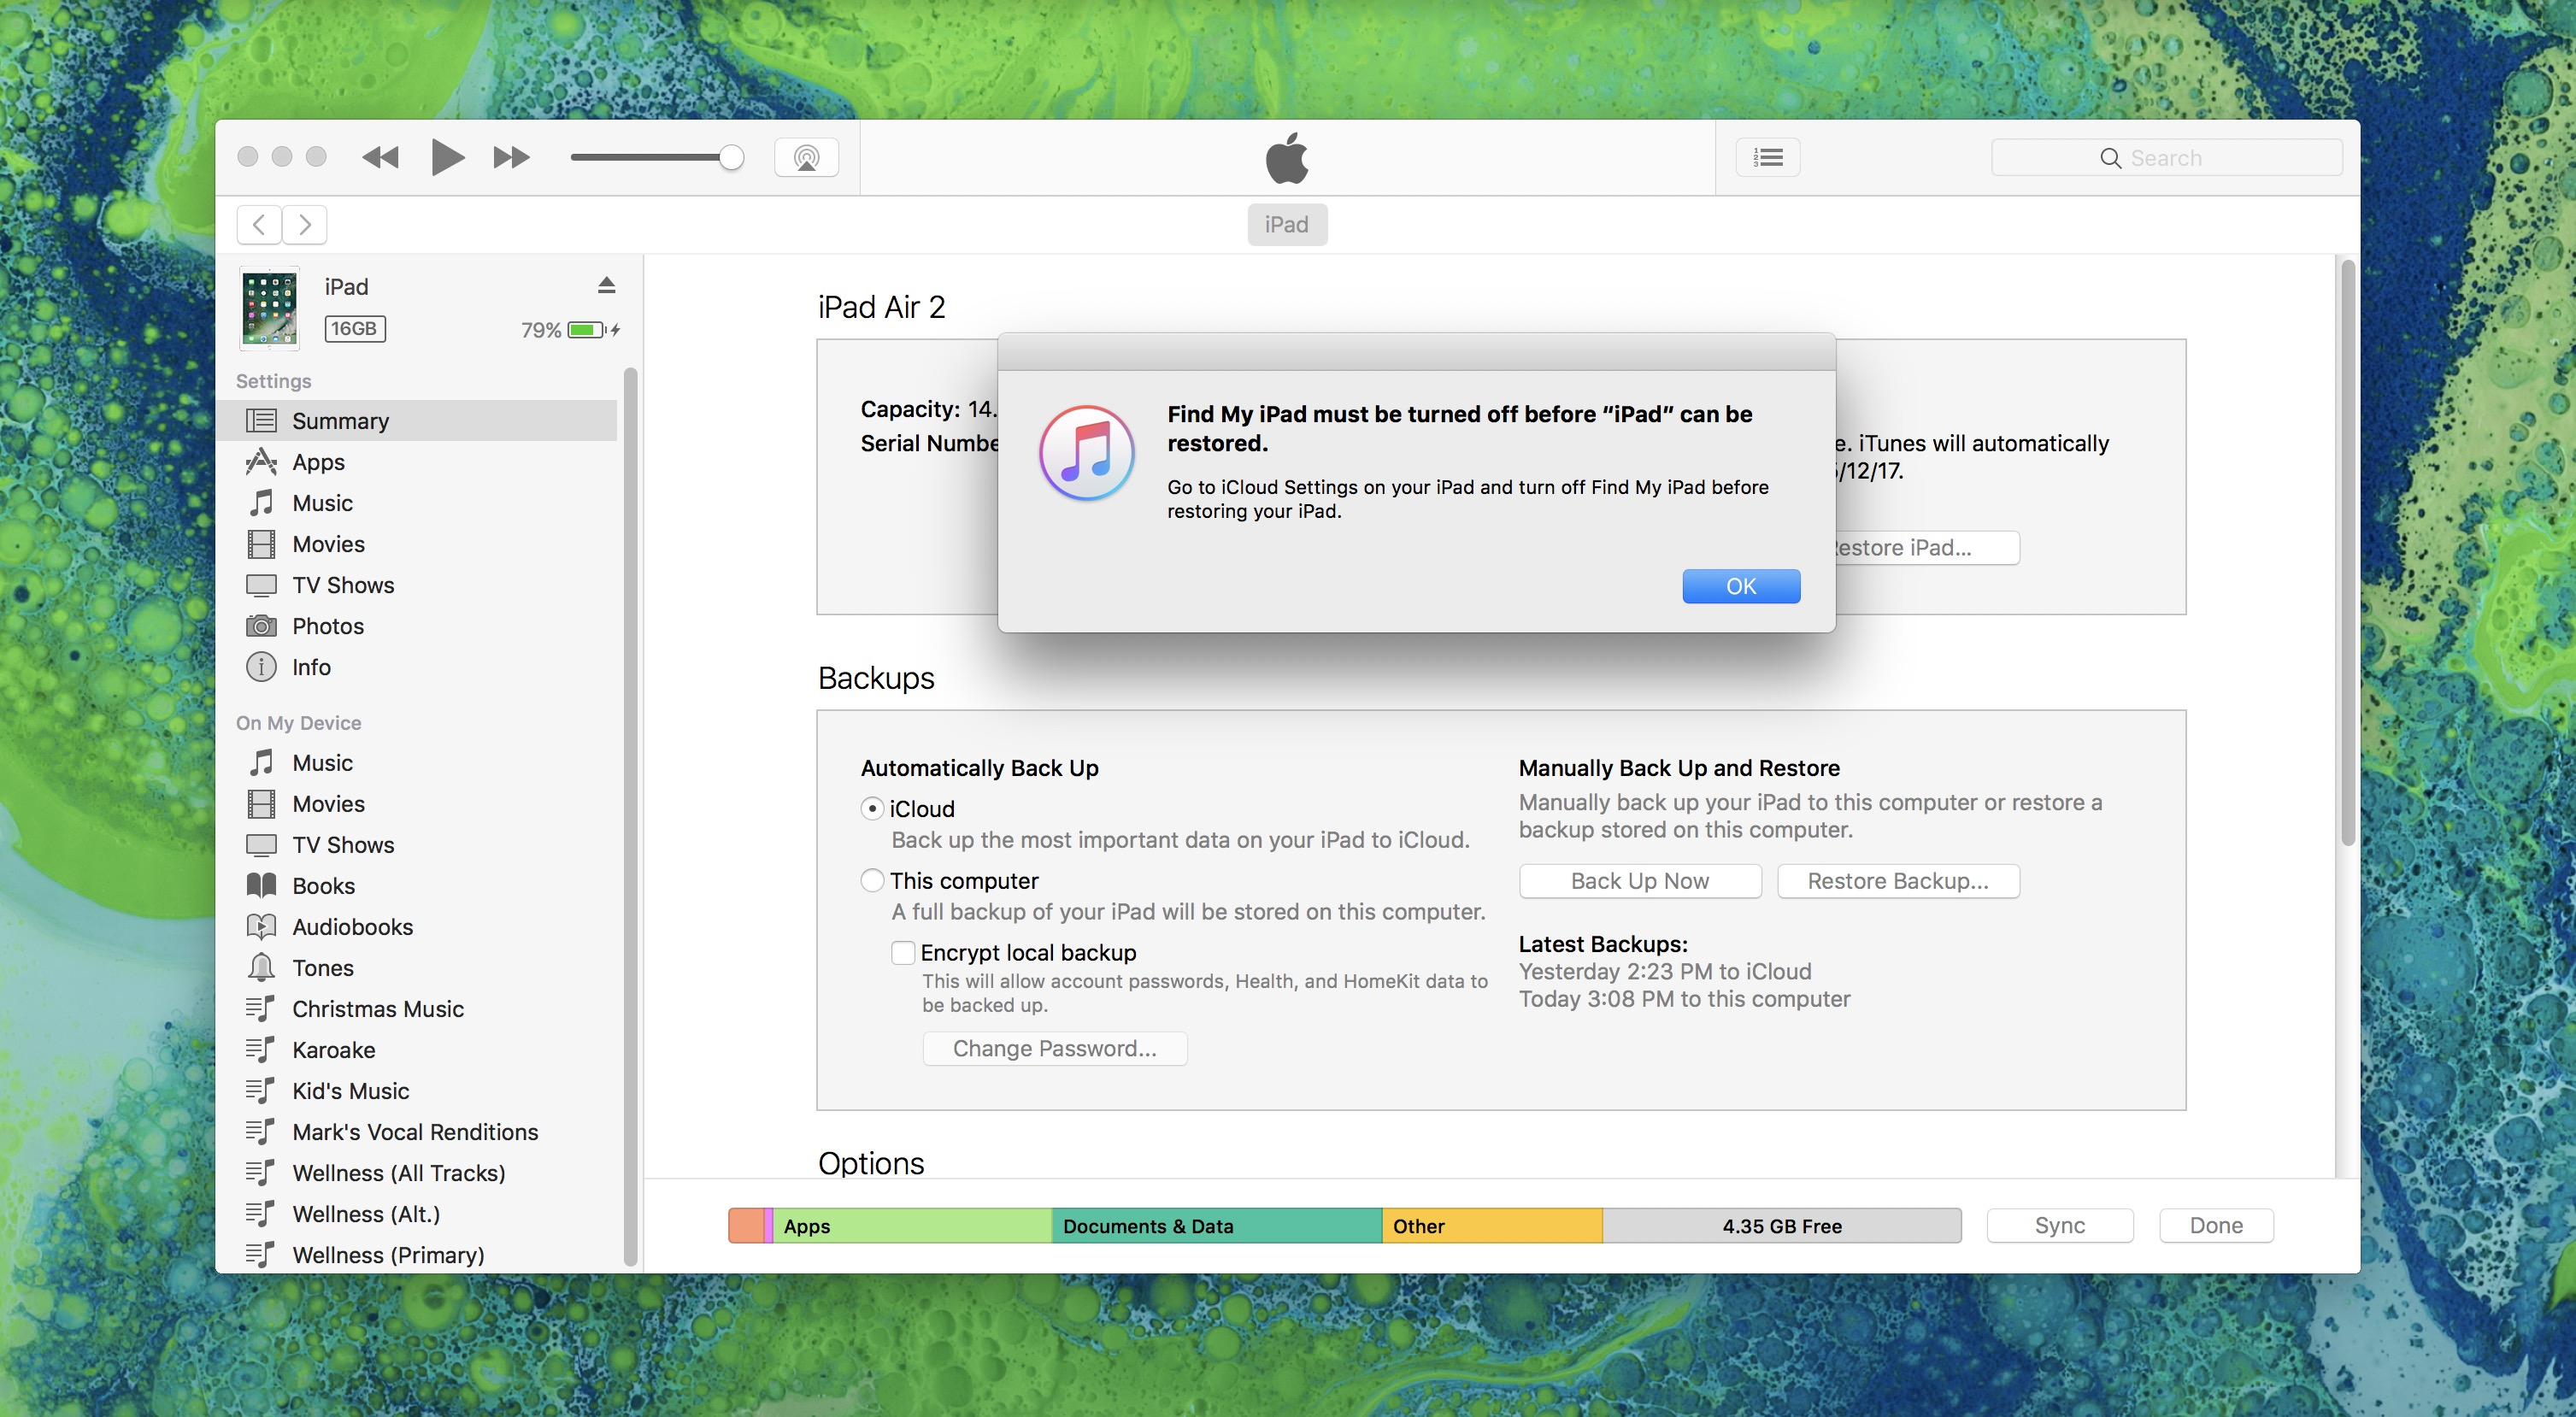 Image showing Turn off Find My iPad warning before restoring from iTunes Backup